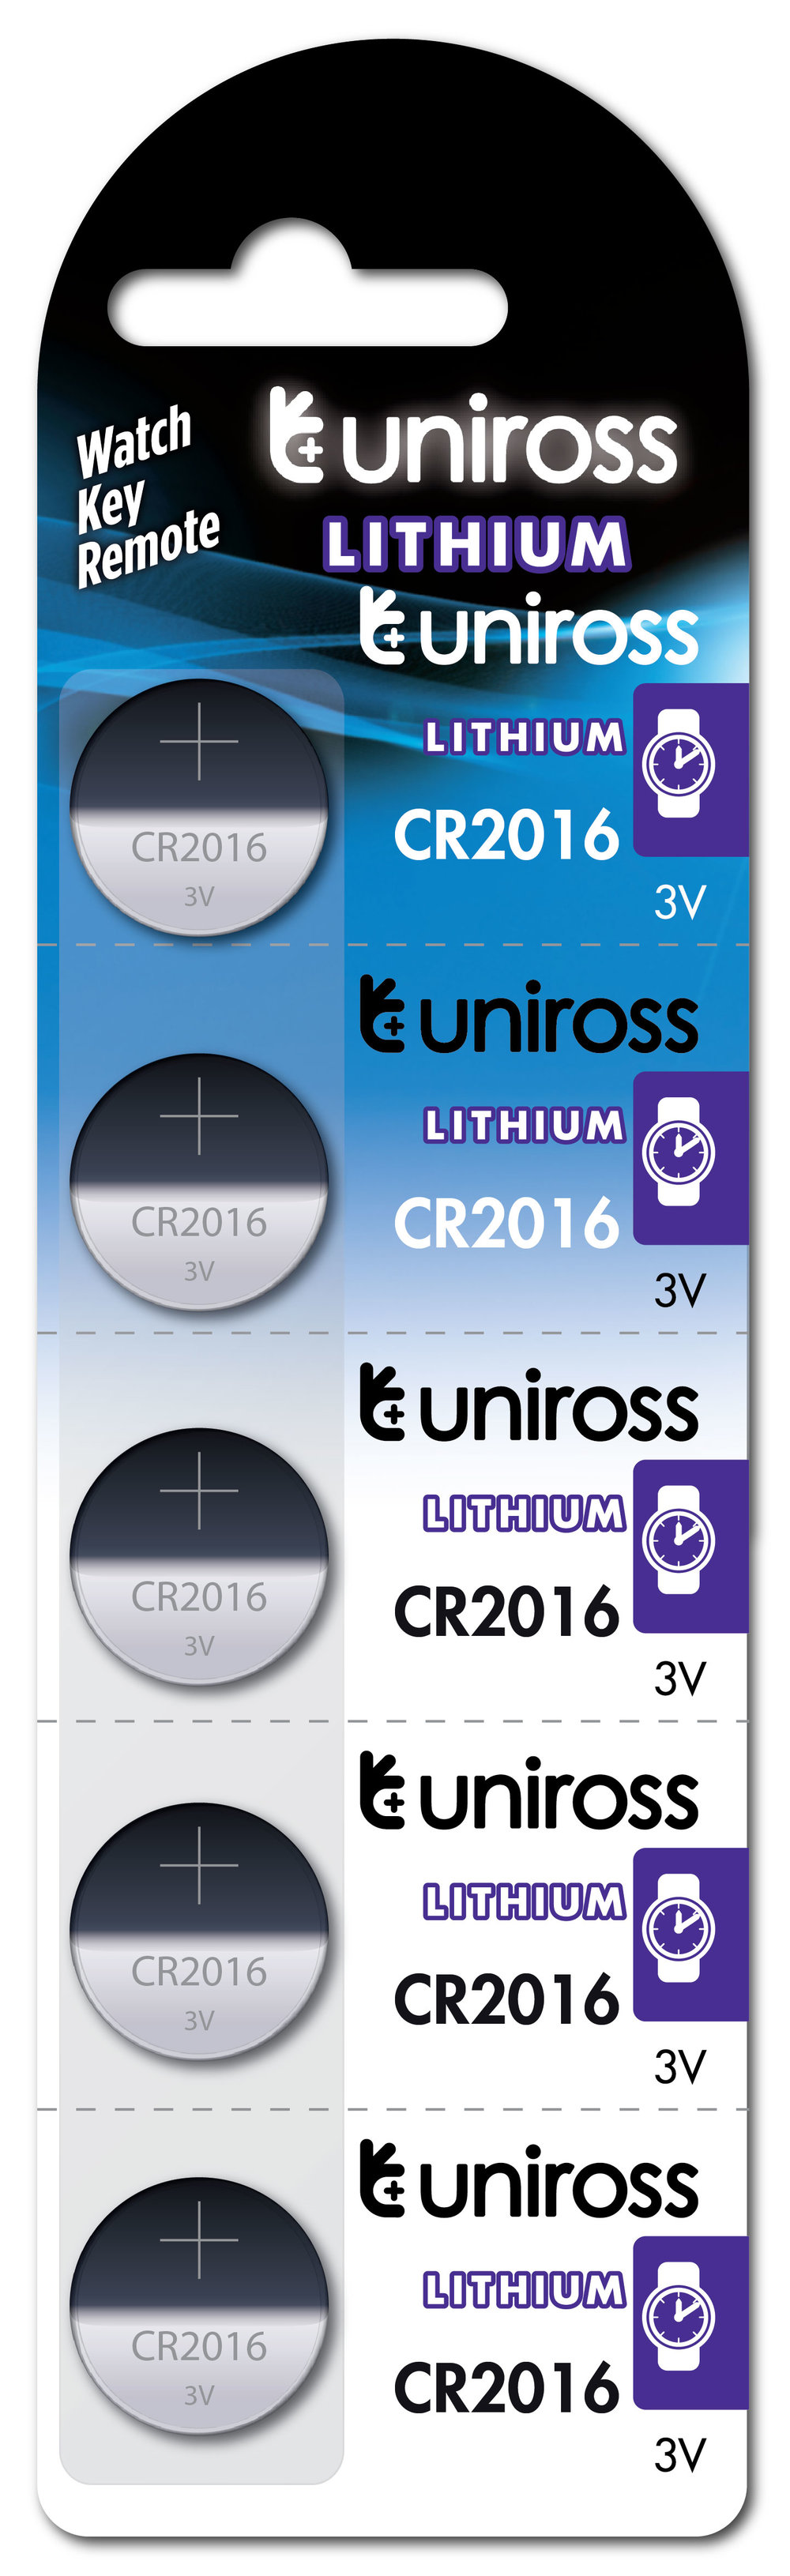 Button_Cell_[U5CR2016] UNIROSS BP5 CR2016 LITHIUM.jpg